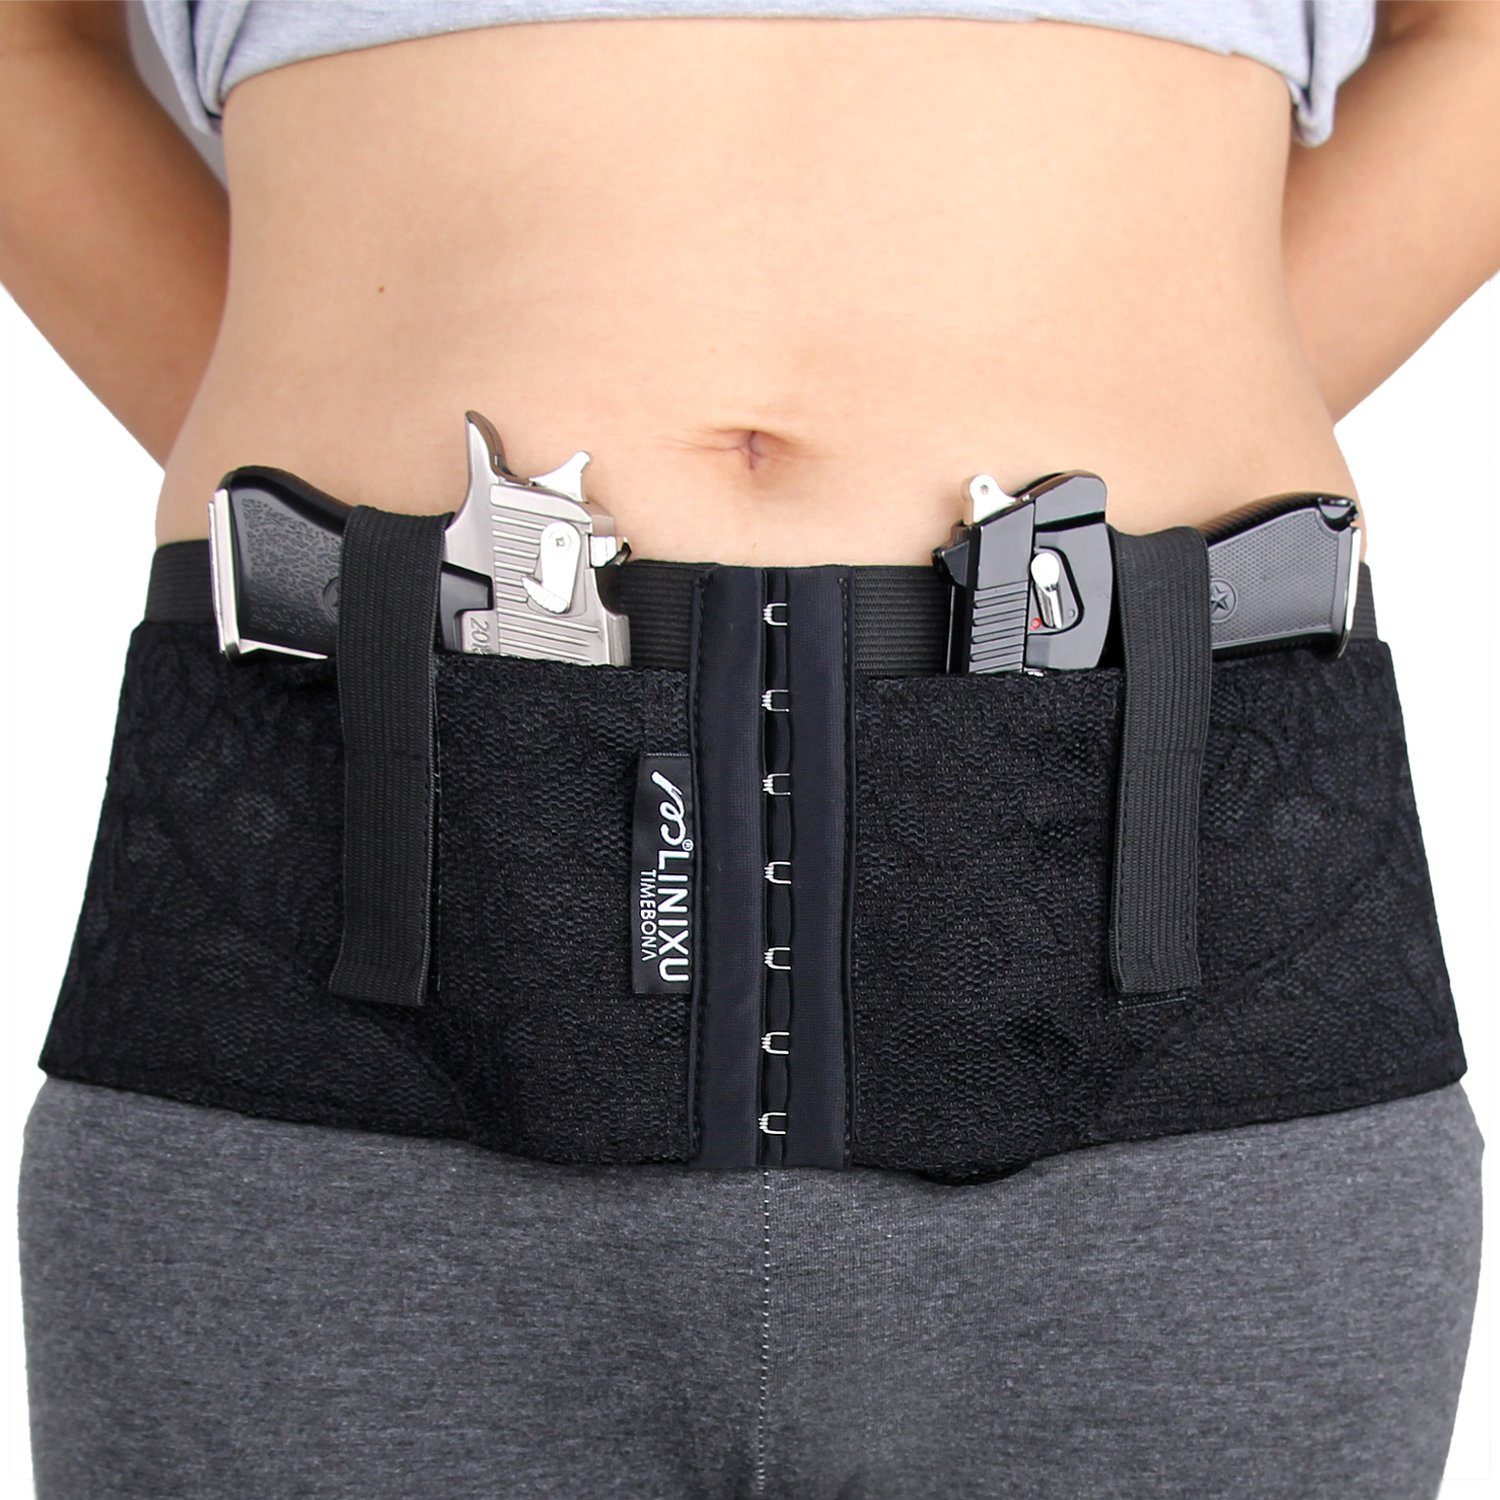 amazon com linixu women s concealed carry holster hip hugger